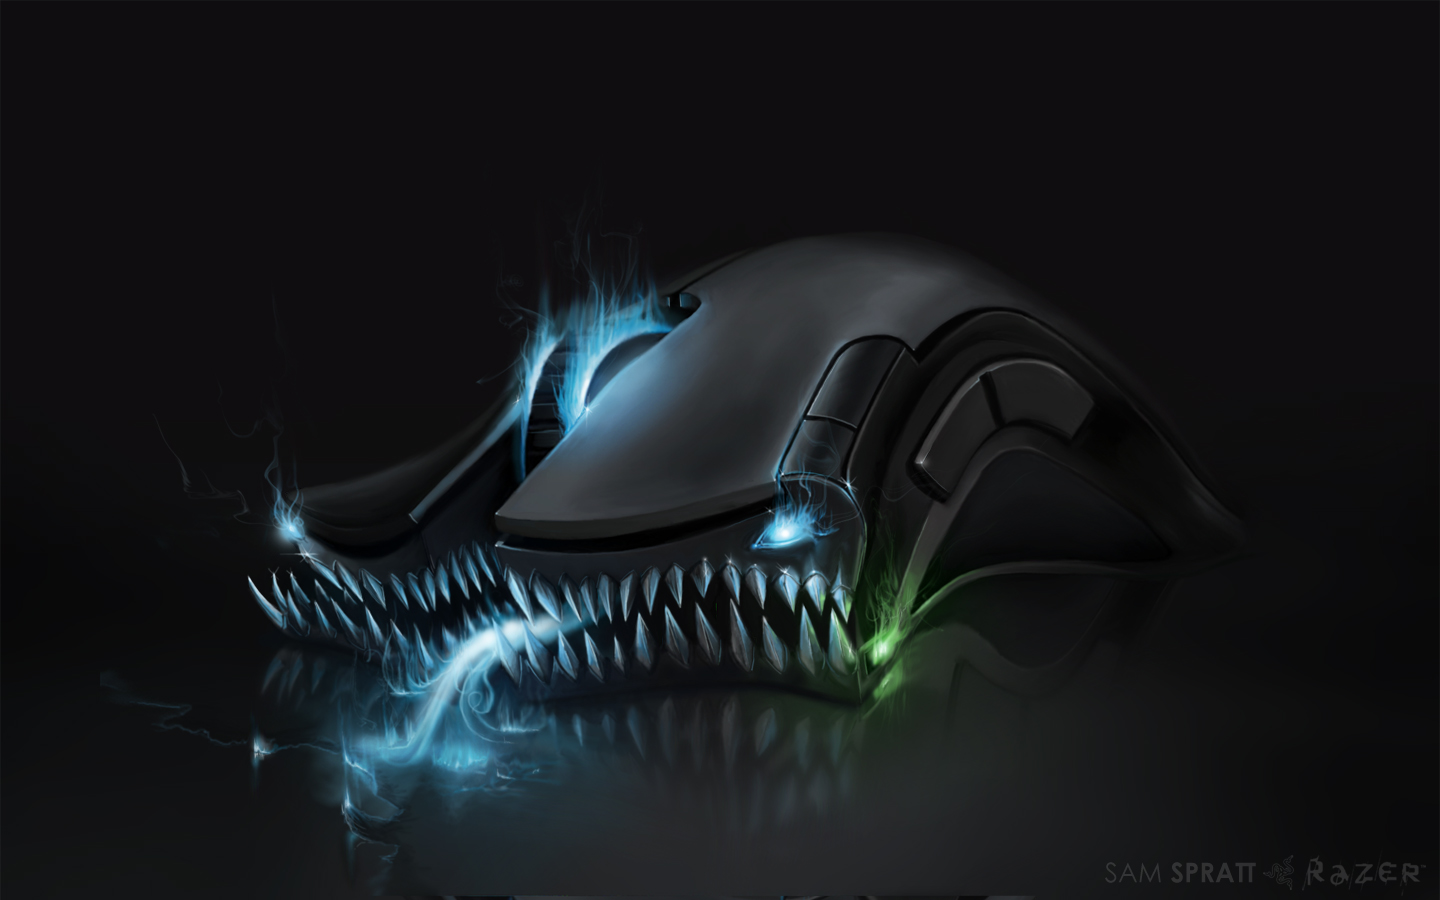 Linux Iphone Wallpaper Razer Wallpaper Ronald L337